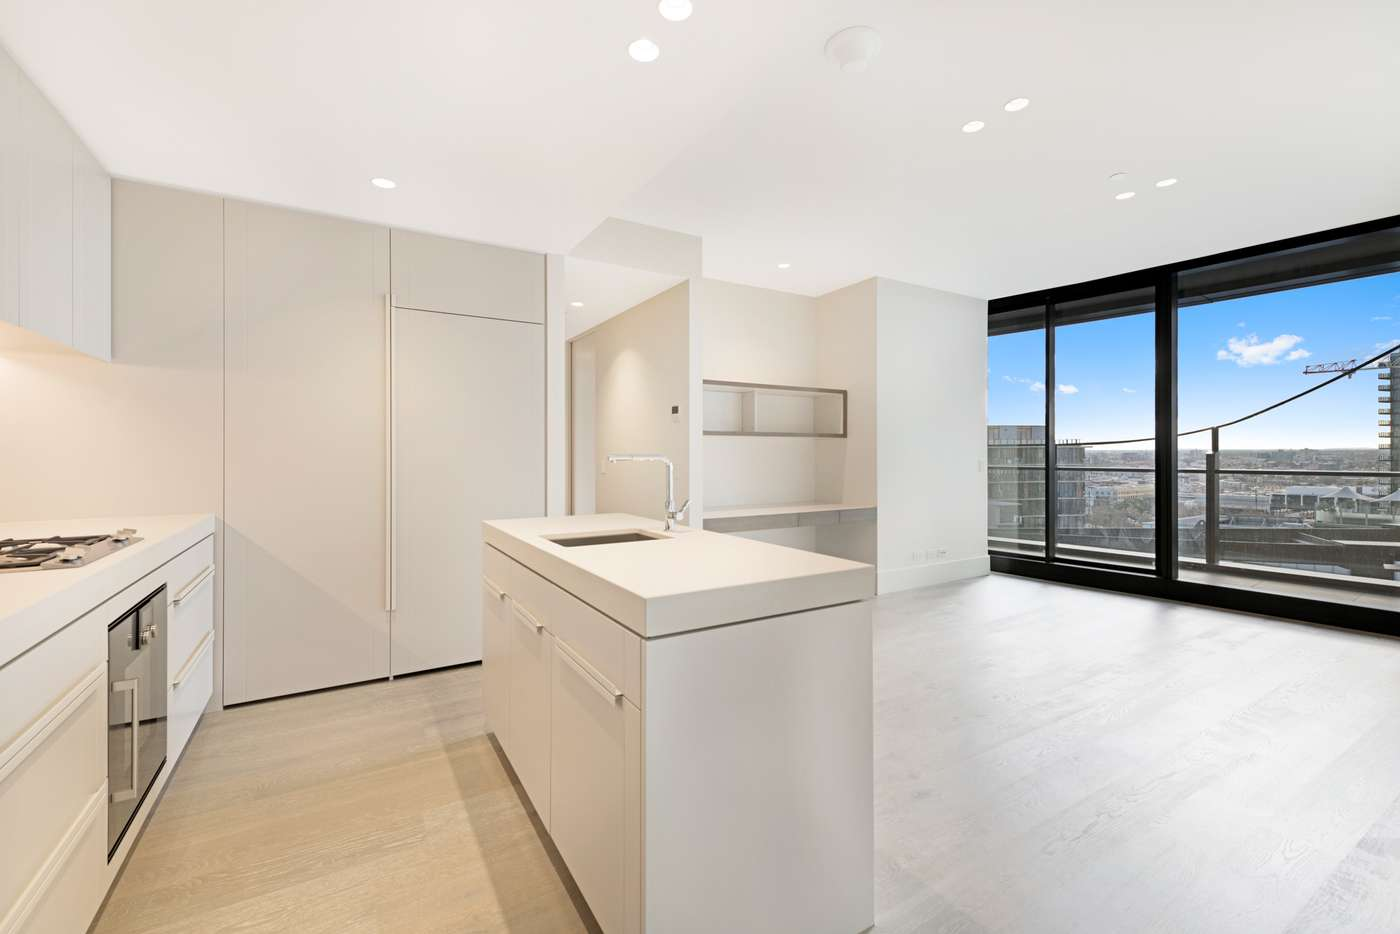 Main view of Homely apartment listing, 1603/1603/1 ALMEIDA CRESCENT, South Yarra VIC 3141